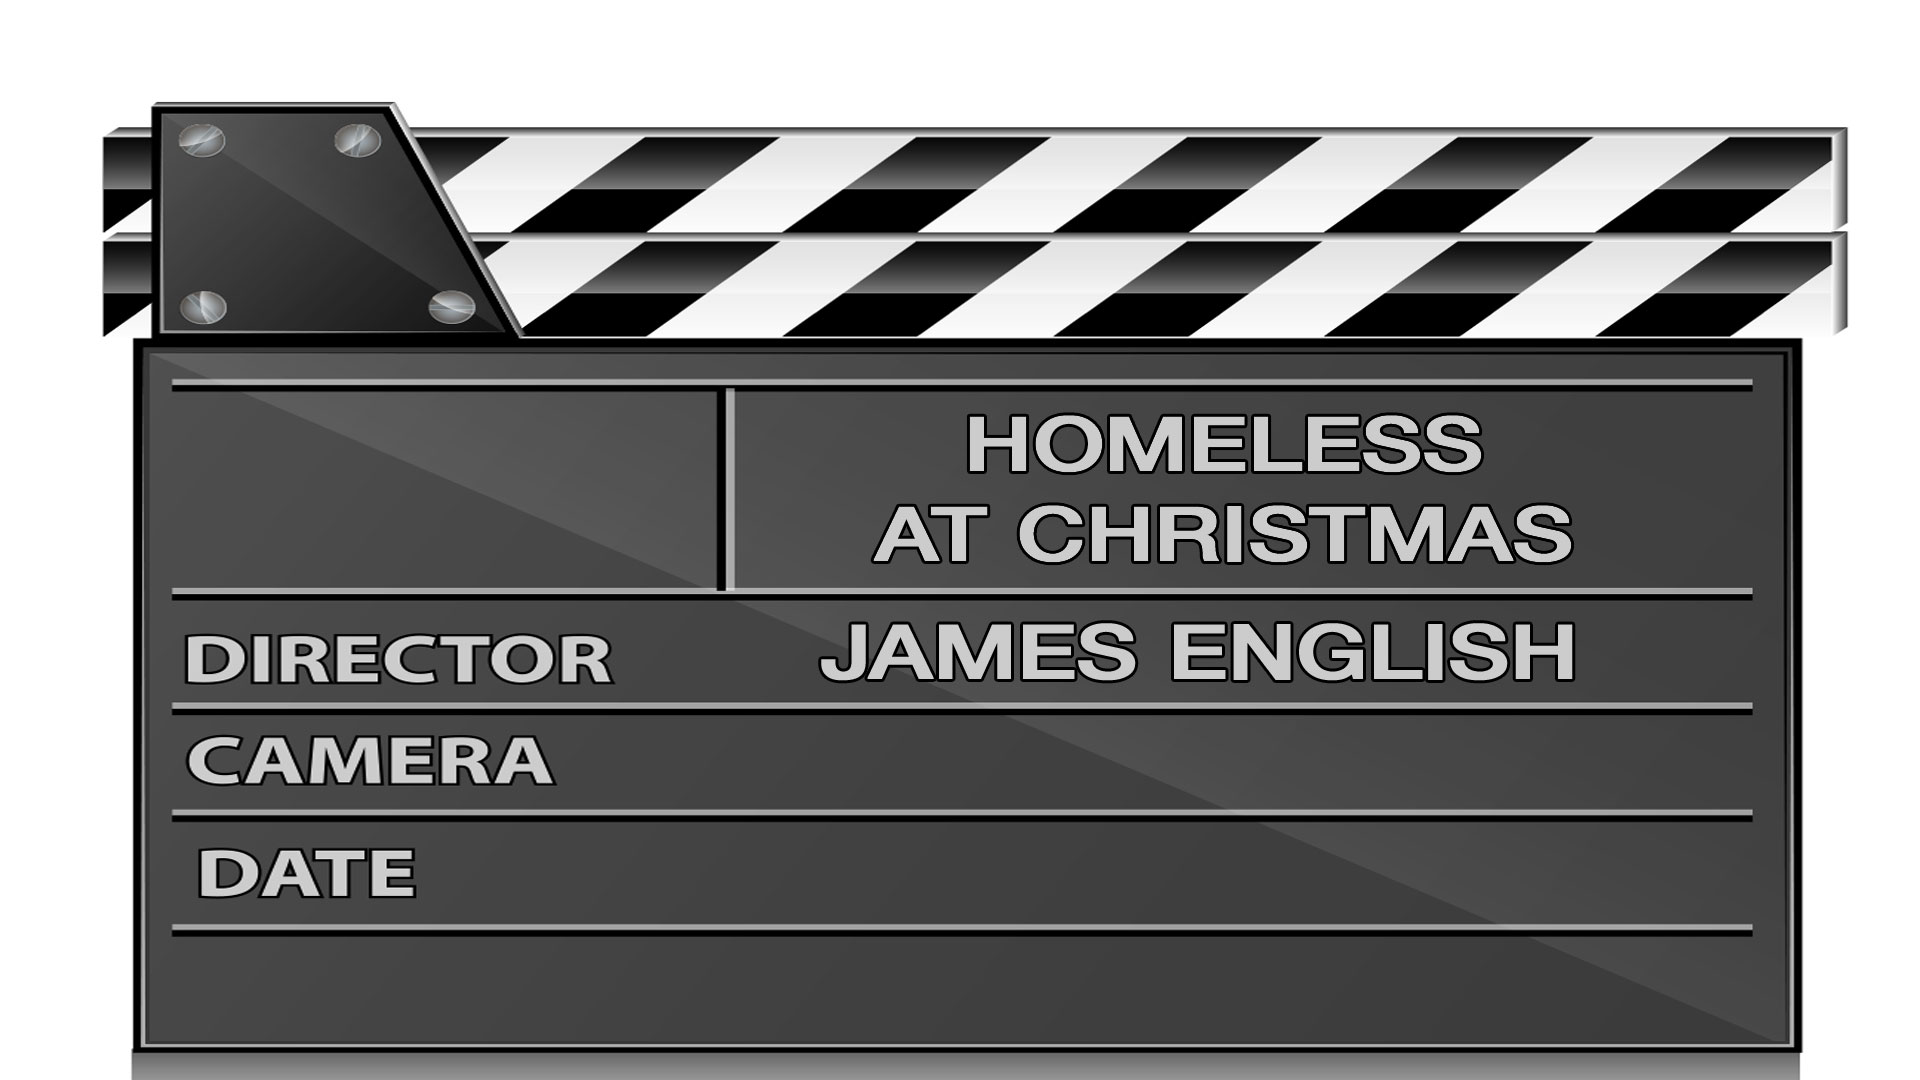 Homeless at Christmas